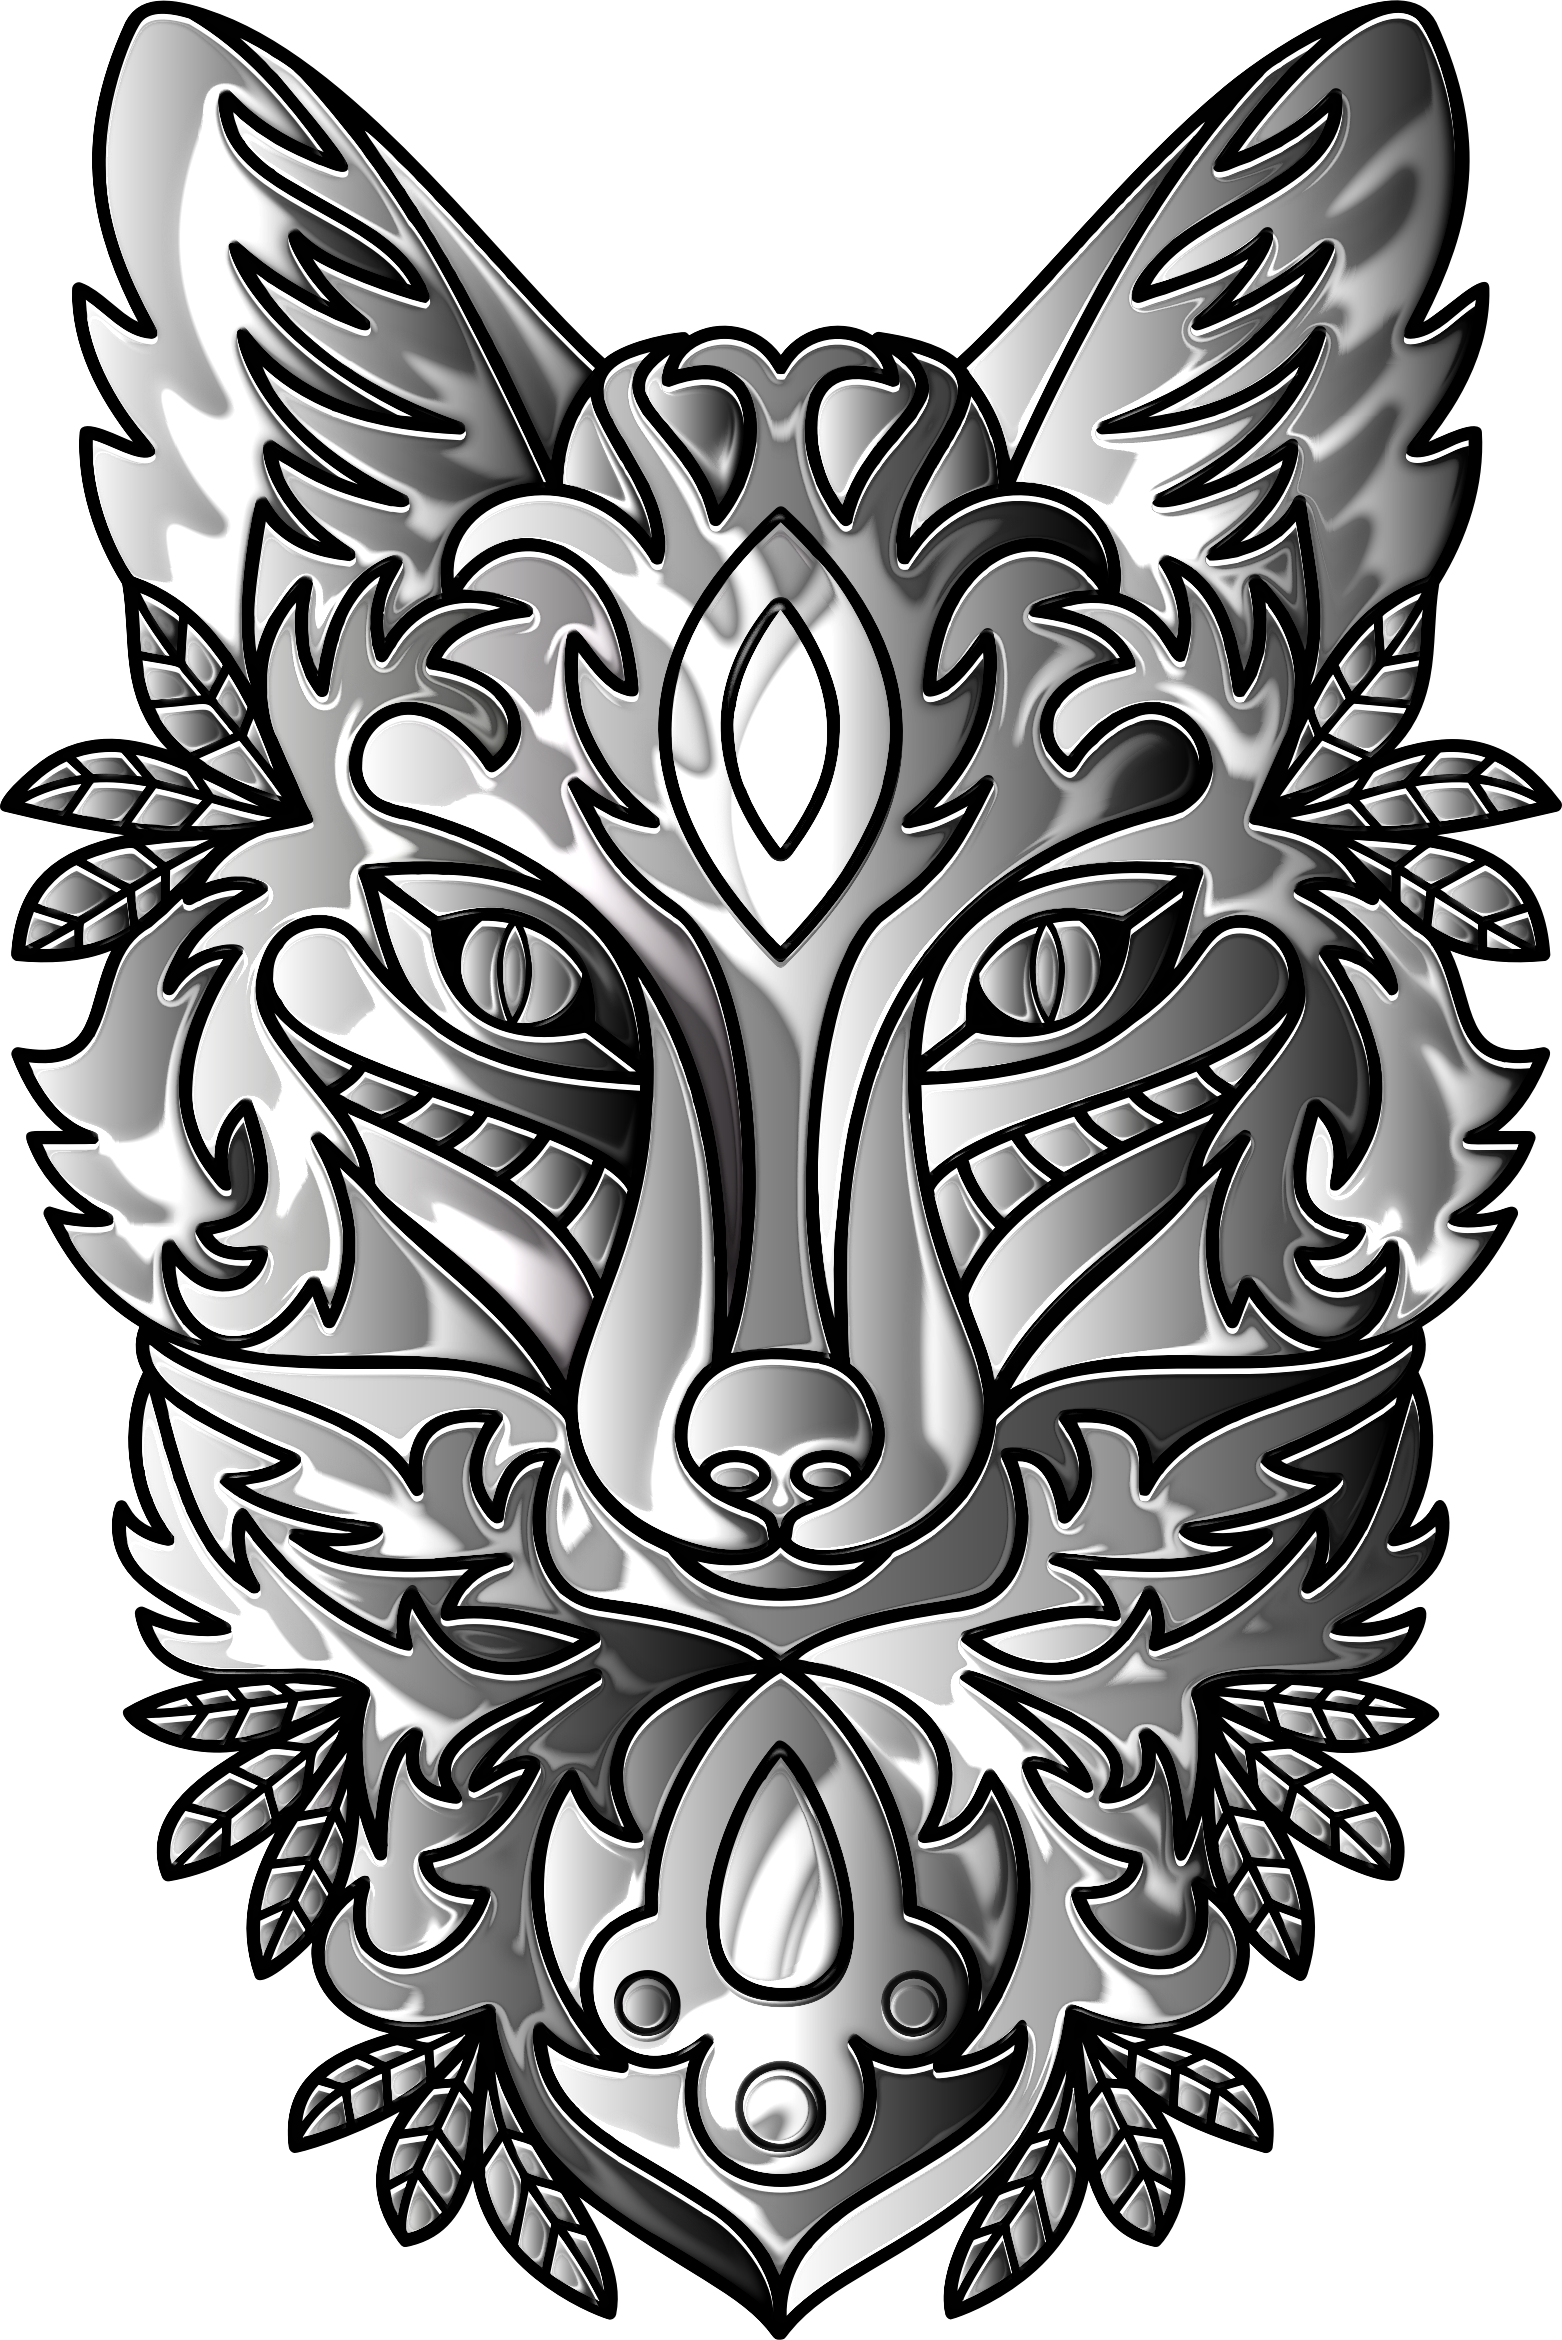 Duochromatic Ornamental Fox Line Art Enhanced by GDJ